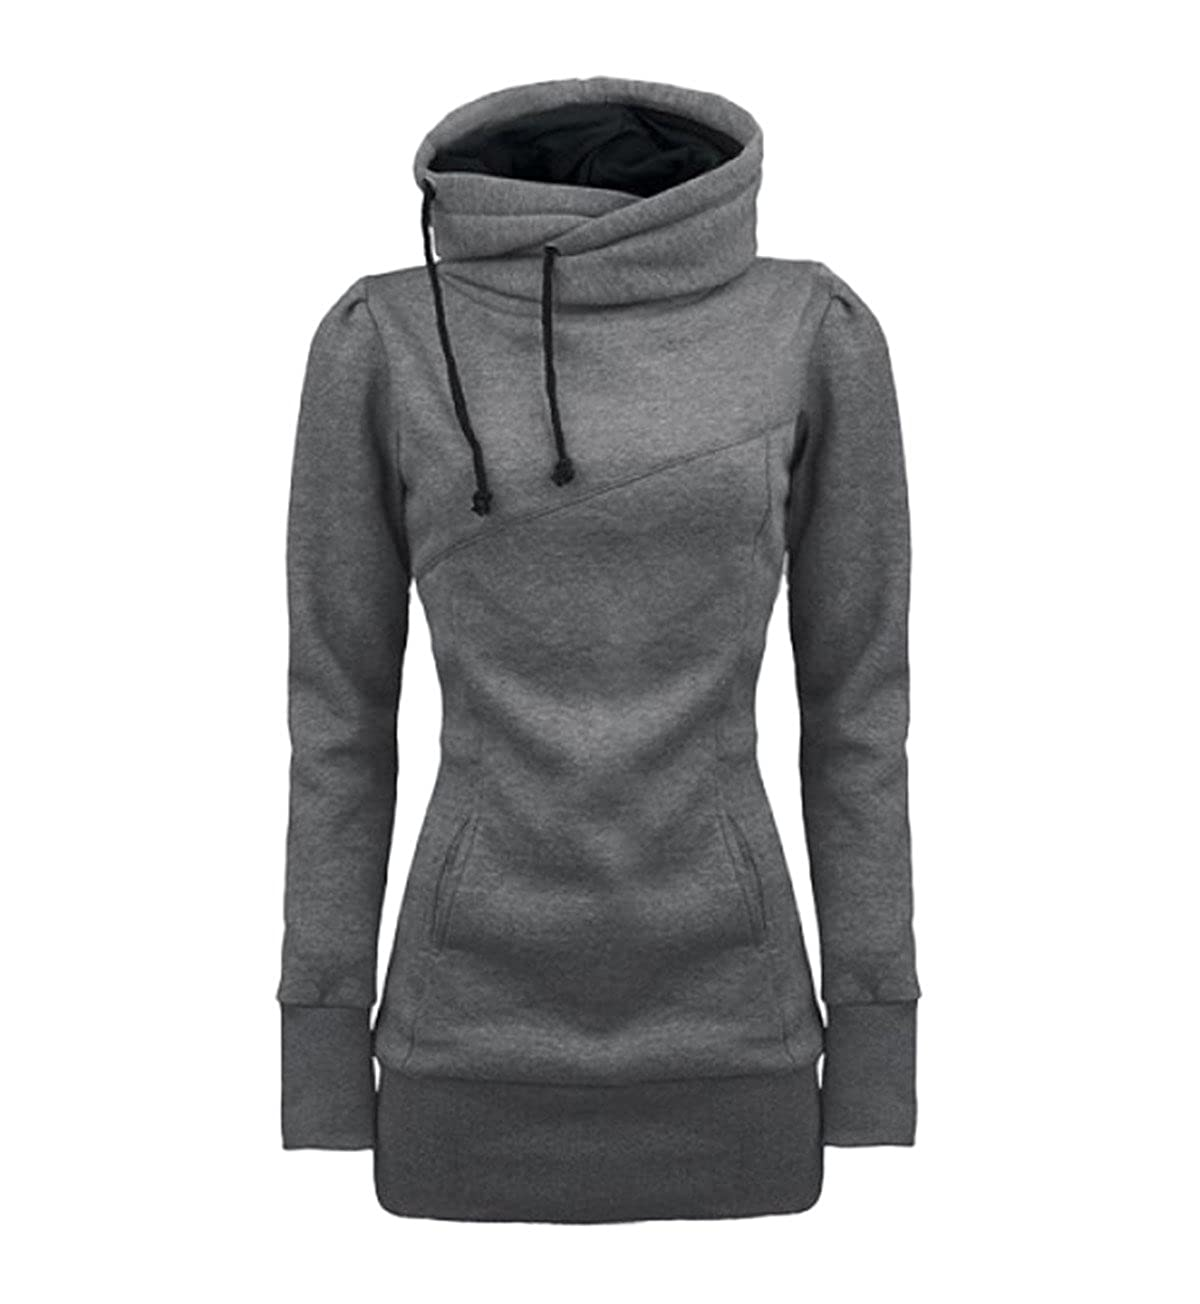 COCO clothing Herbst Winter Kapuzen Pullover Warme Outwear